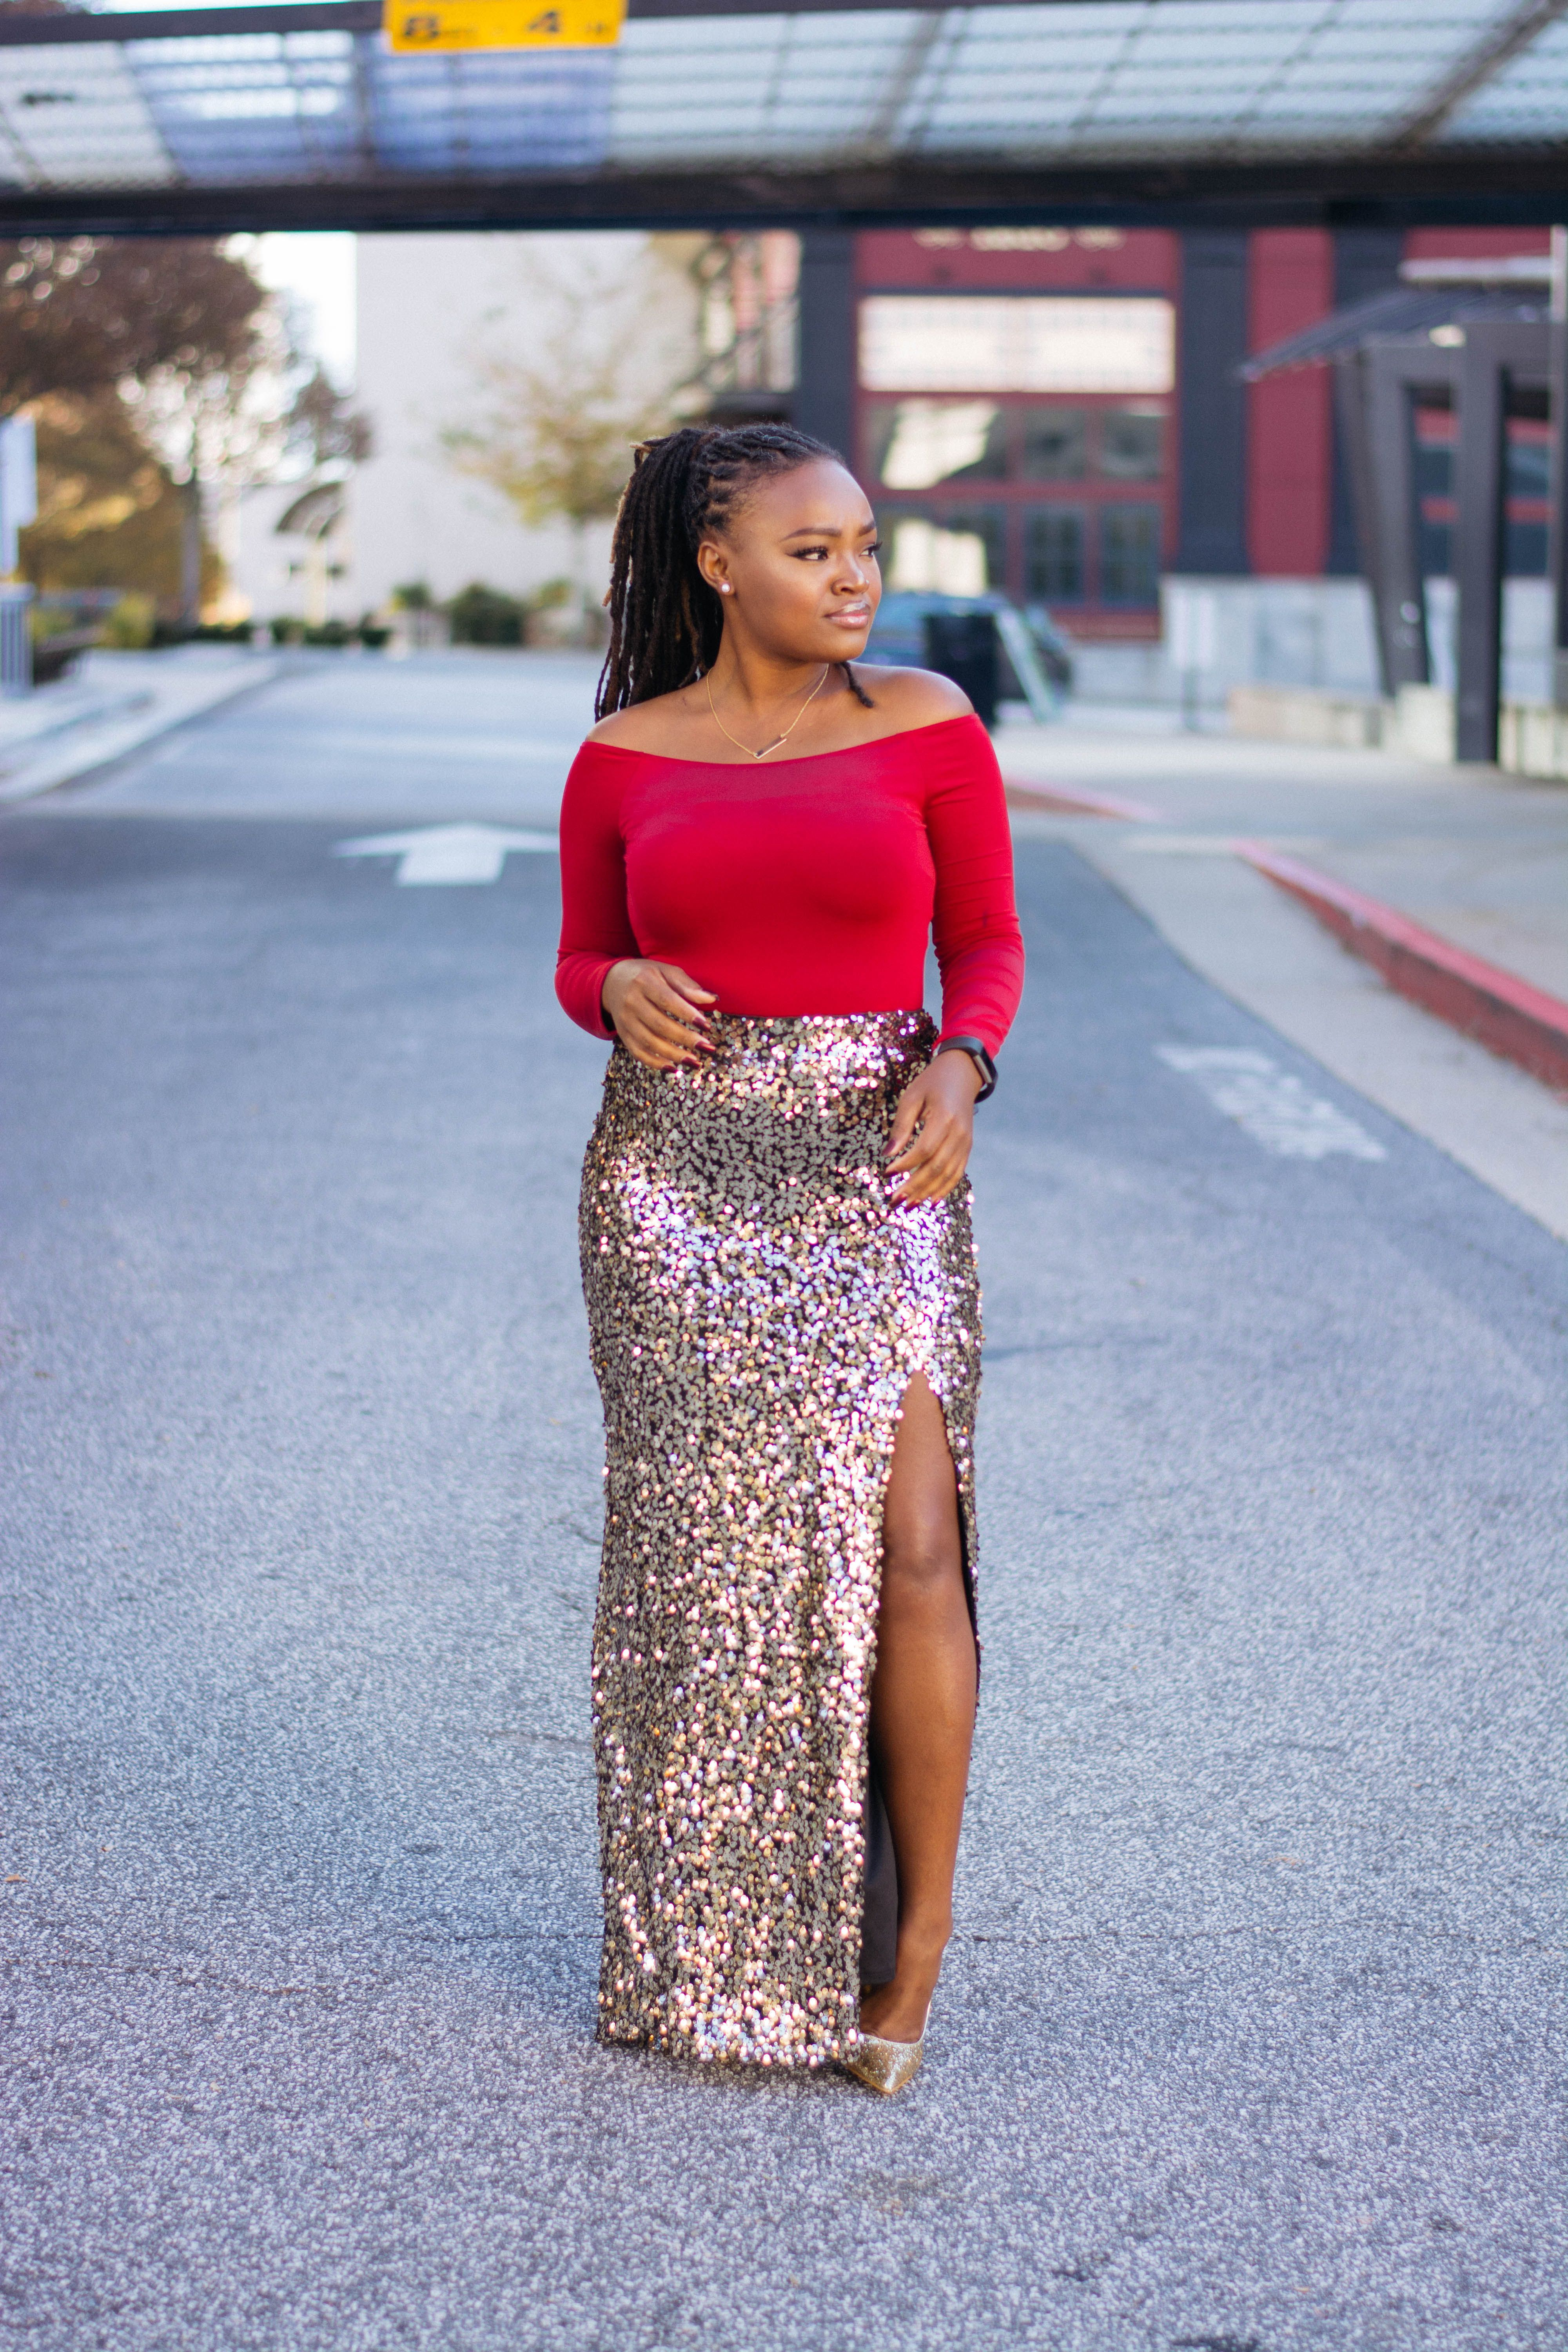 ba584f937 OFF THE SHOULDER RED BODYSUIT X SEQUIN MAXI SKIRT | On The Blog ...